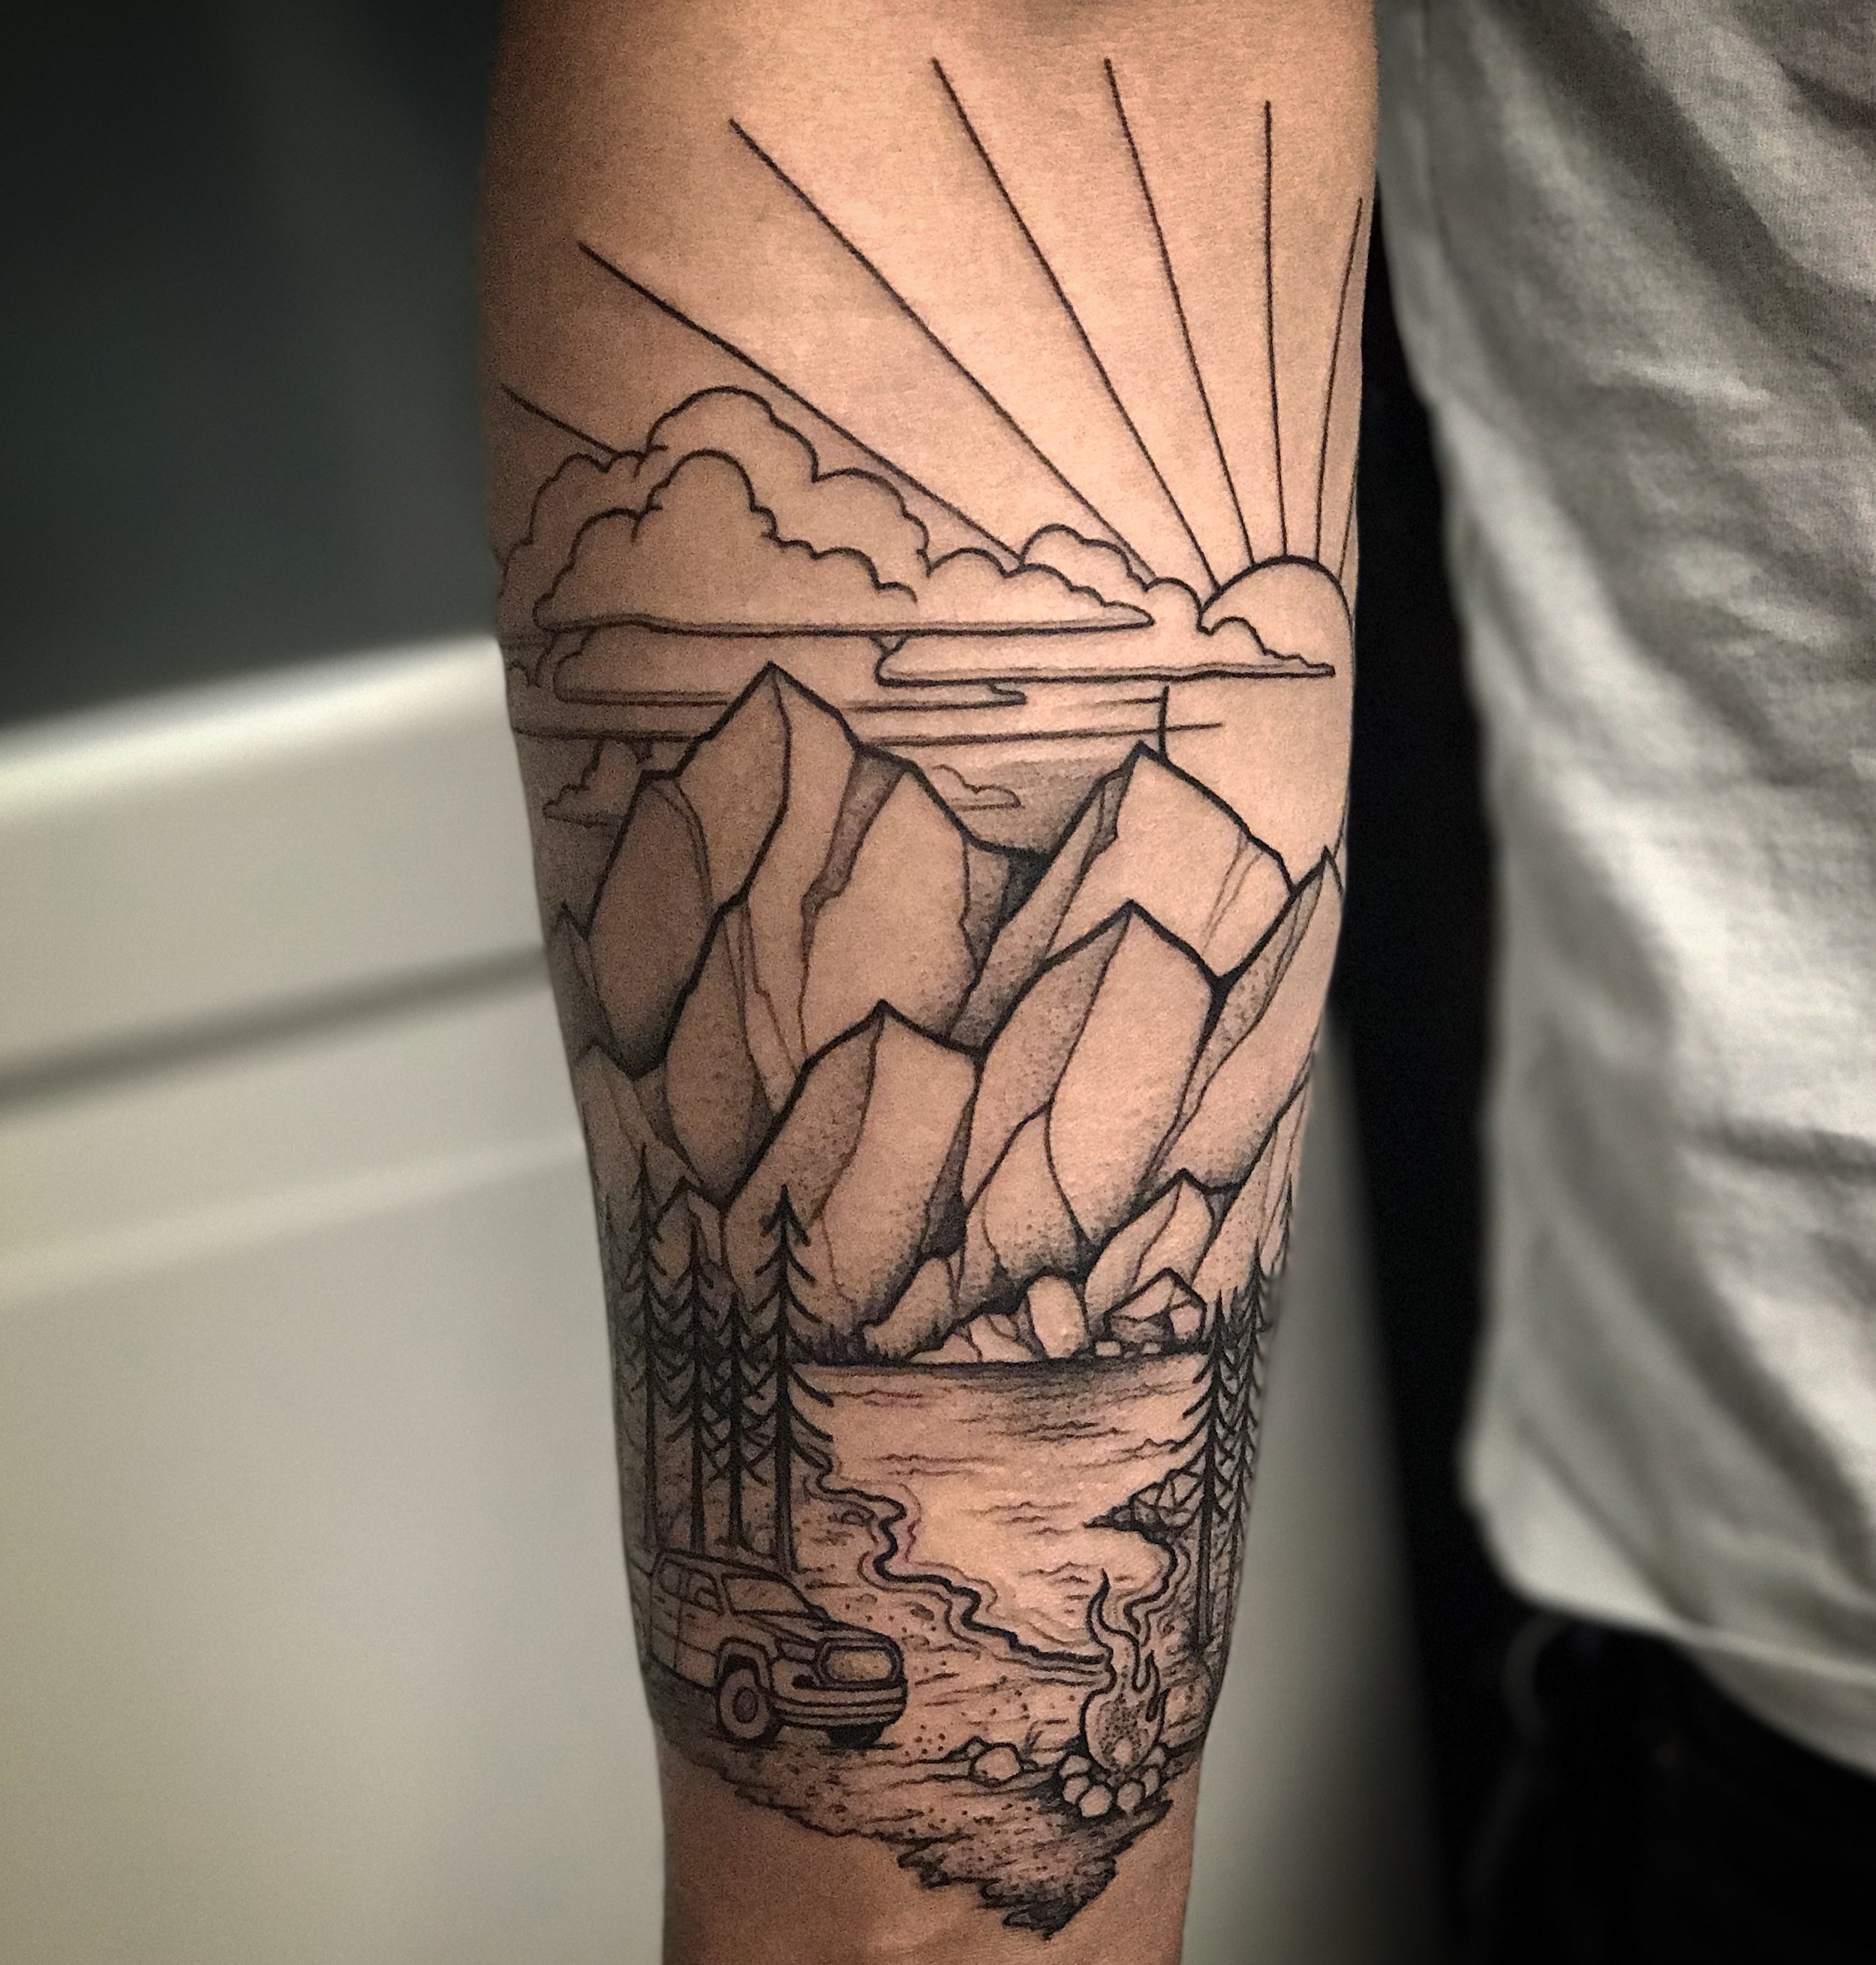 Blackwork Mountain Landscape Nature Tattoo by David Mushaney